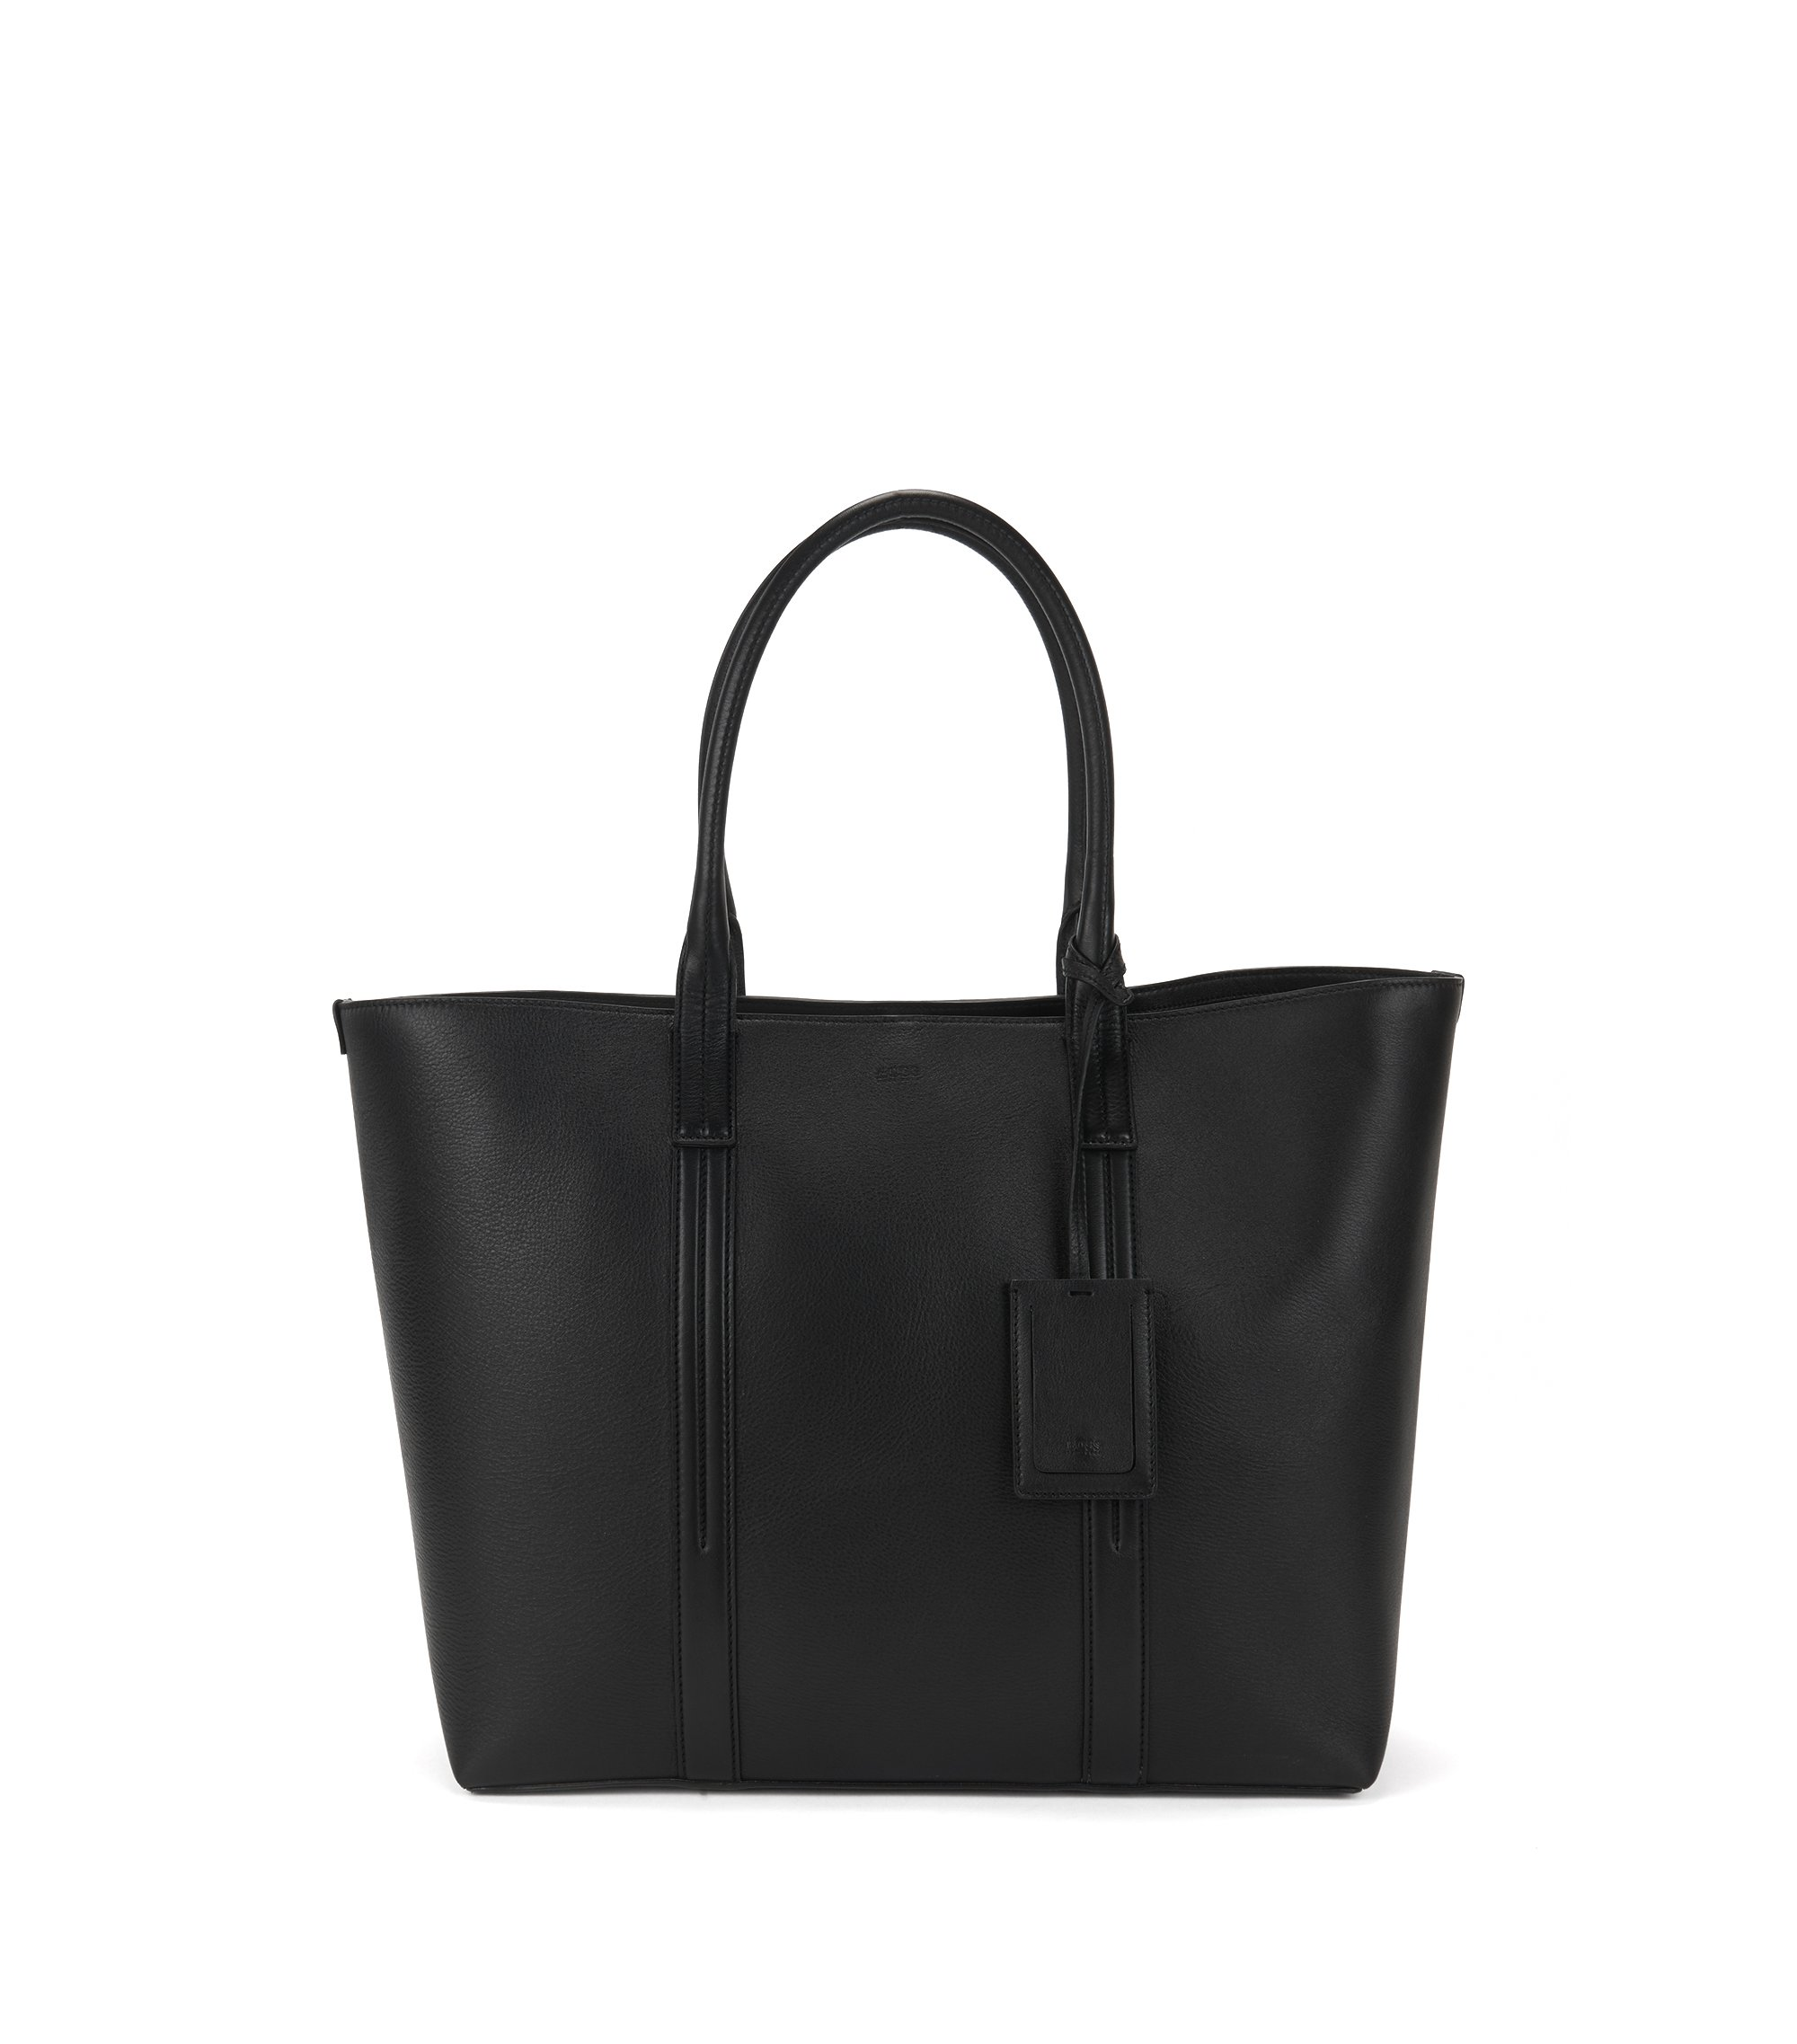 Printed-leather tote bag with polished silver hardware, Black